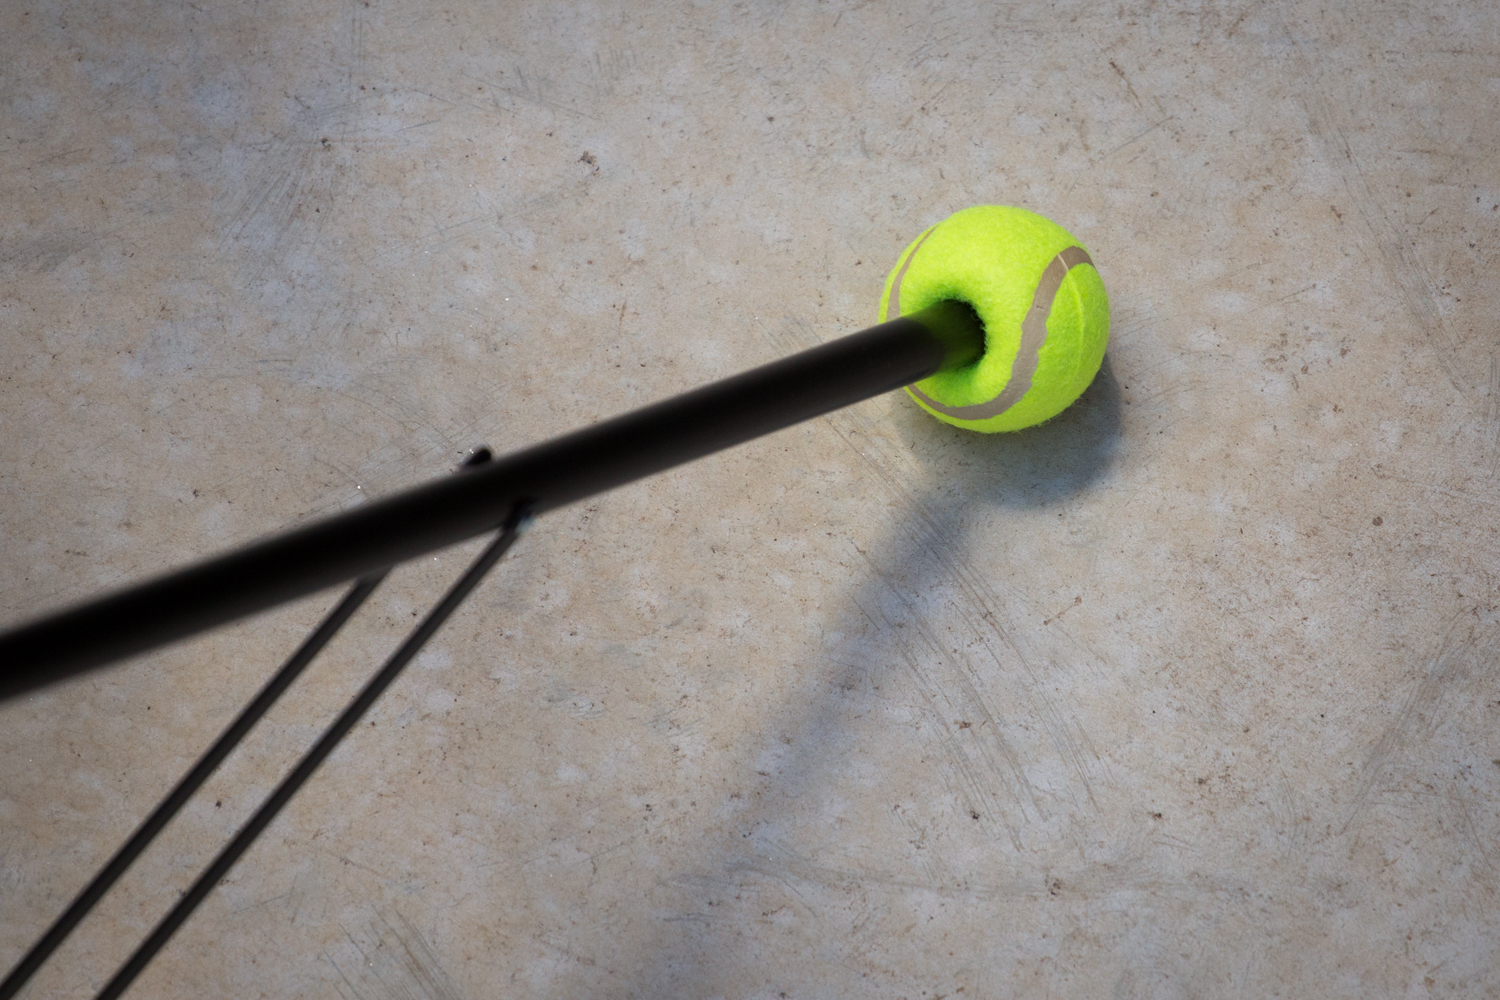 Tennis balls on light stands save floors and clients love you for it.